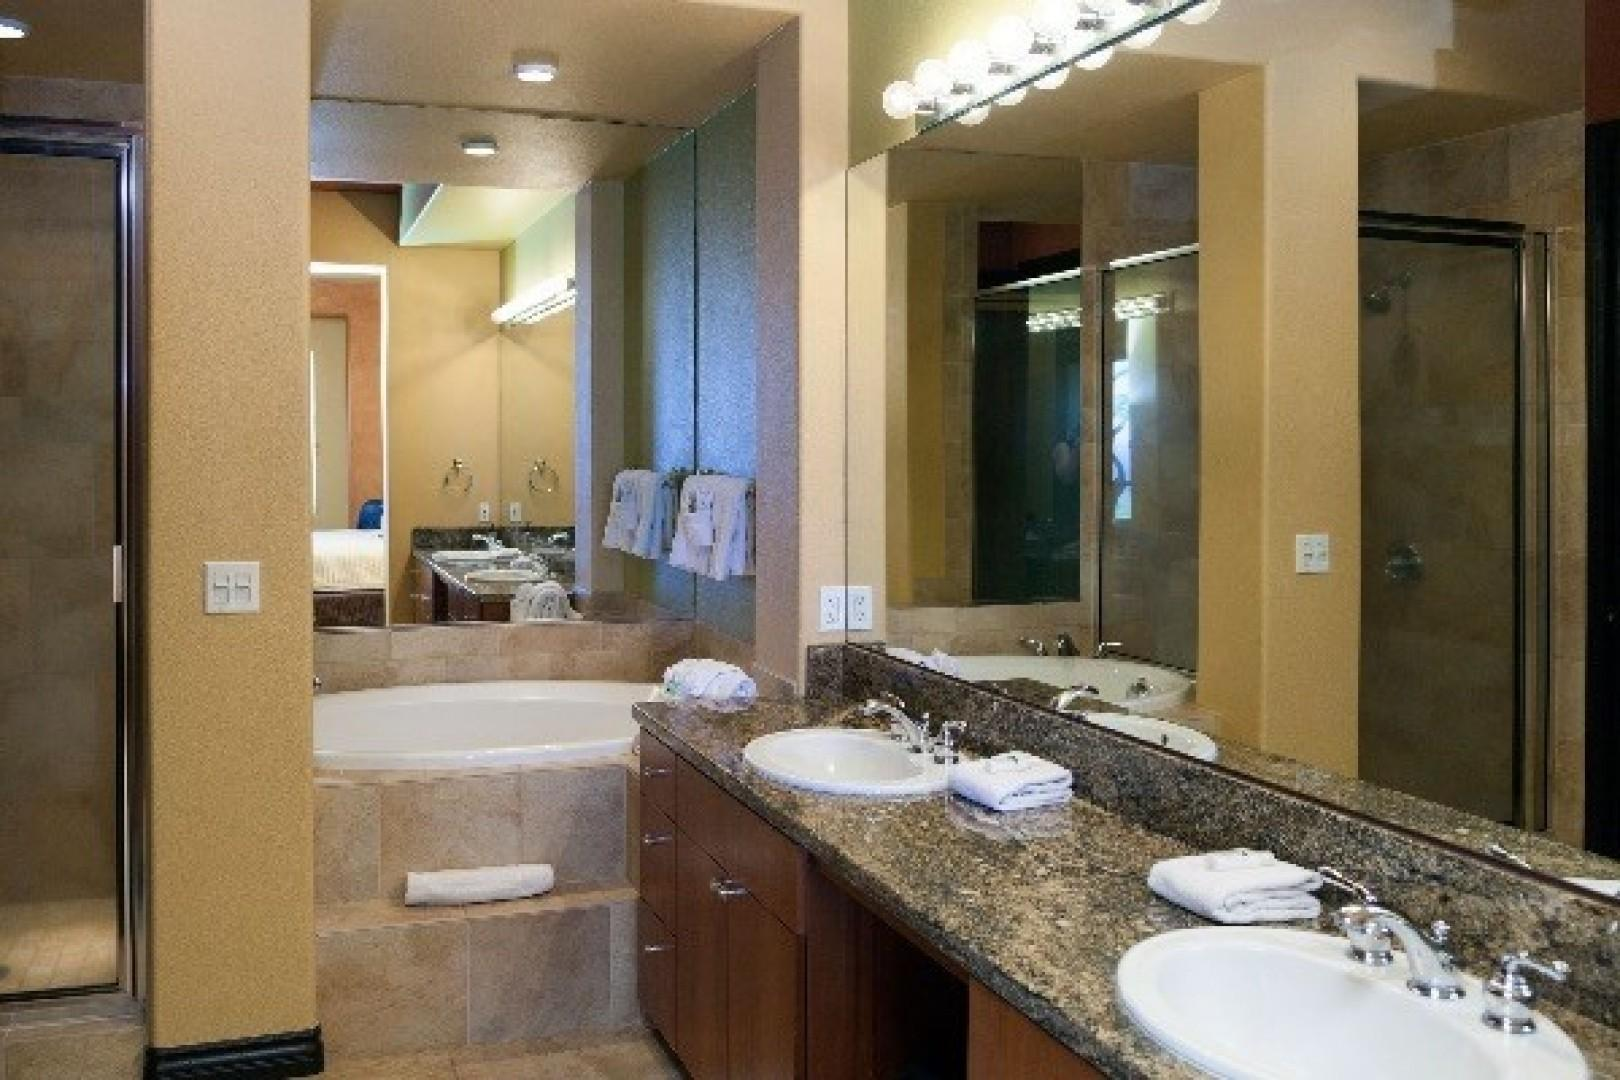 Master Bathroom with dual sinks, walk in shower, soaking tub and private toilet room.